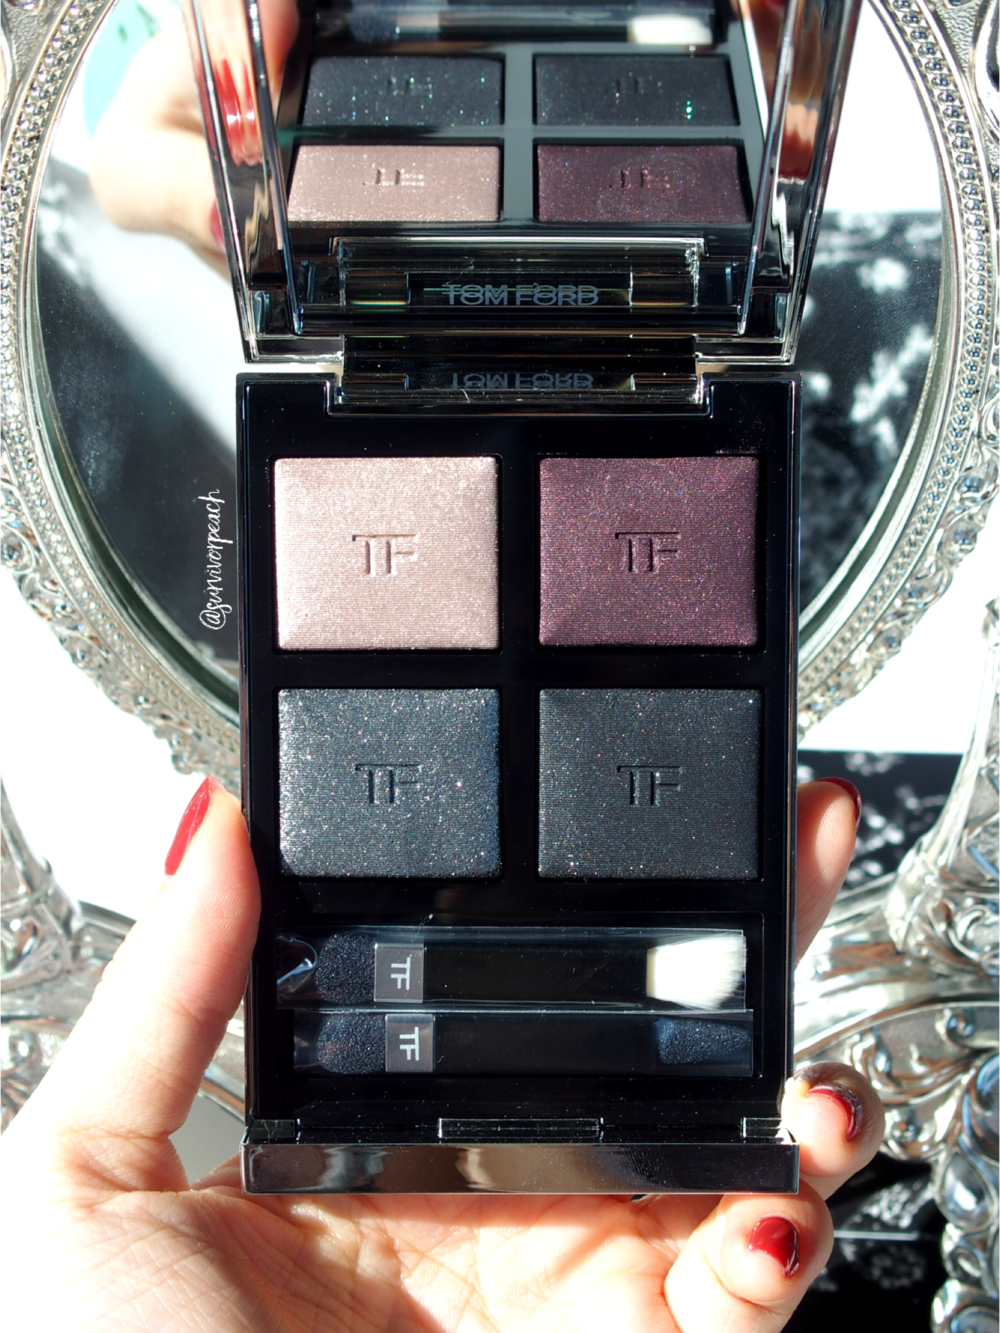 Tom Ford Extreme Eye Color Quad